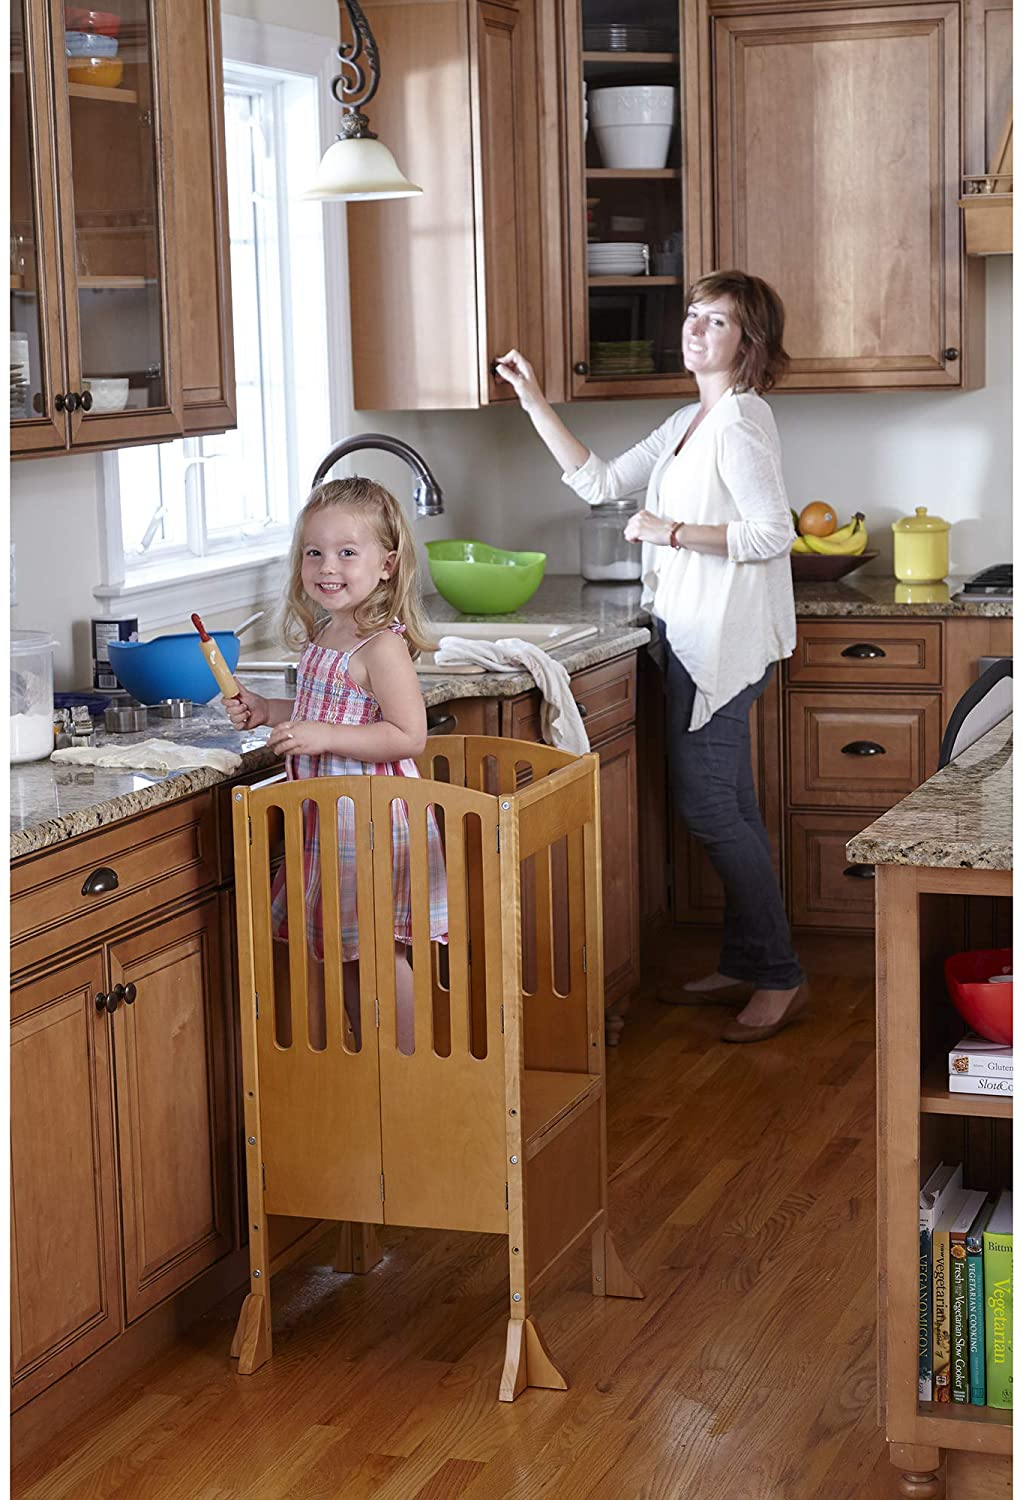 Guidecraft Contemporary Kitchen Helper Stool - Honey: W/Keeper and Non-Slip Mat: Adjustable Height Wooden Baking Tower, Folding Step Stool for Toddlers, Little Kids Learning Furniture